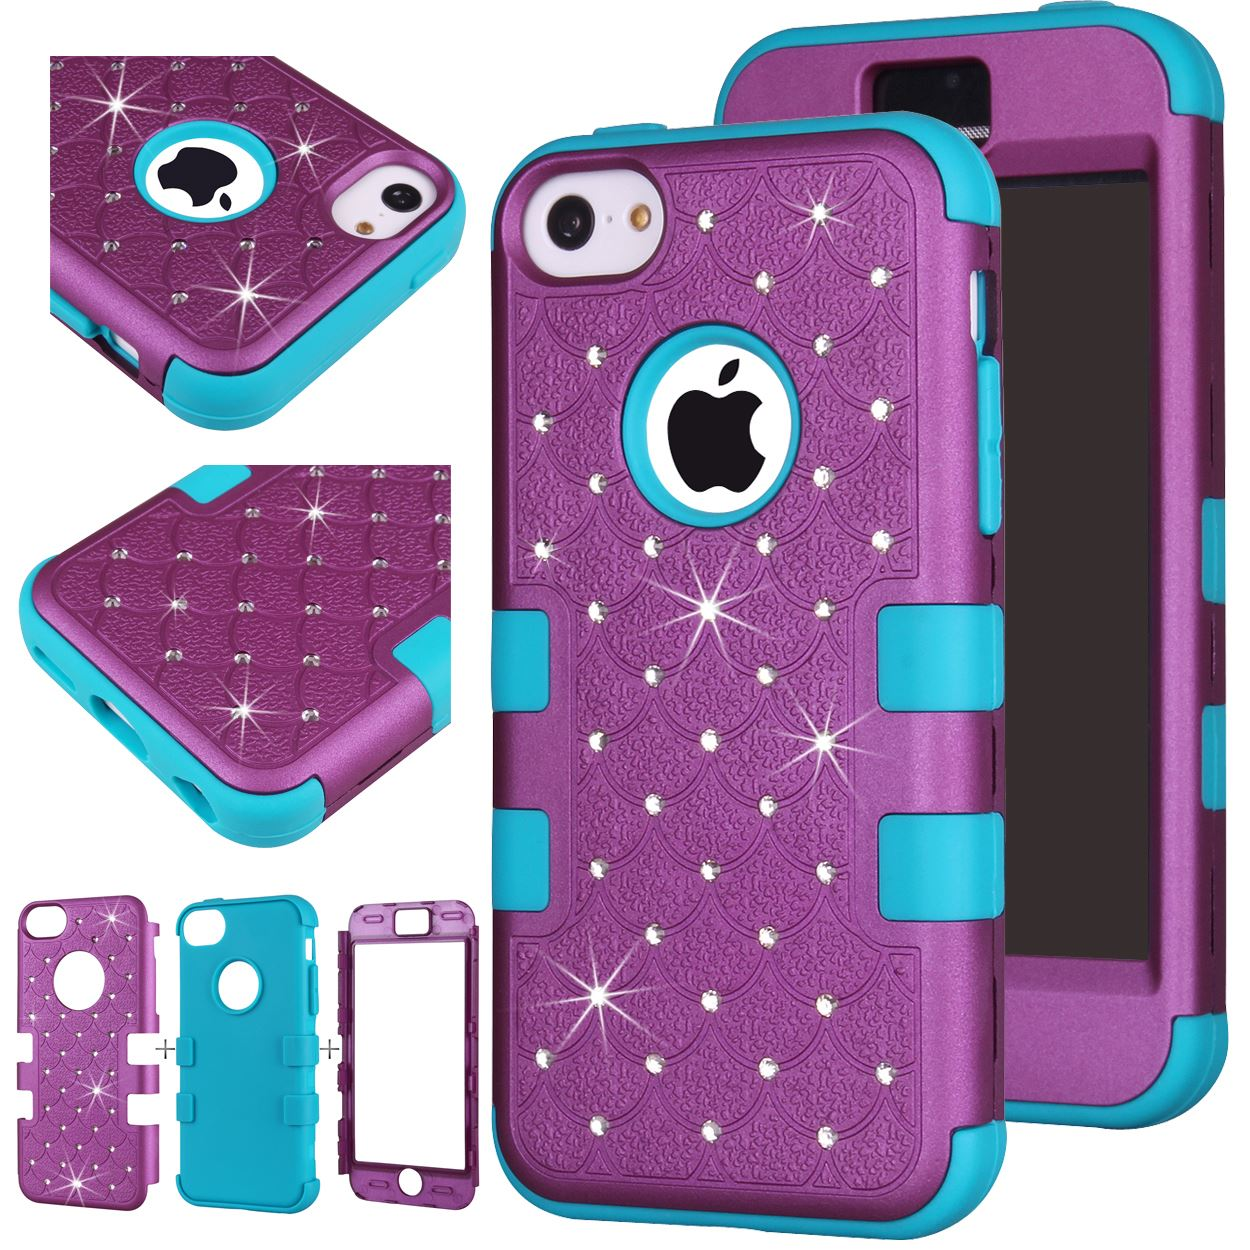 Find great deals on eBay for cute iphone 5c cases. Shop with confidence.